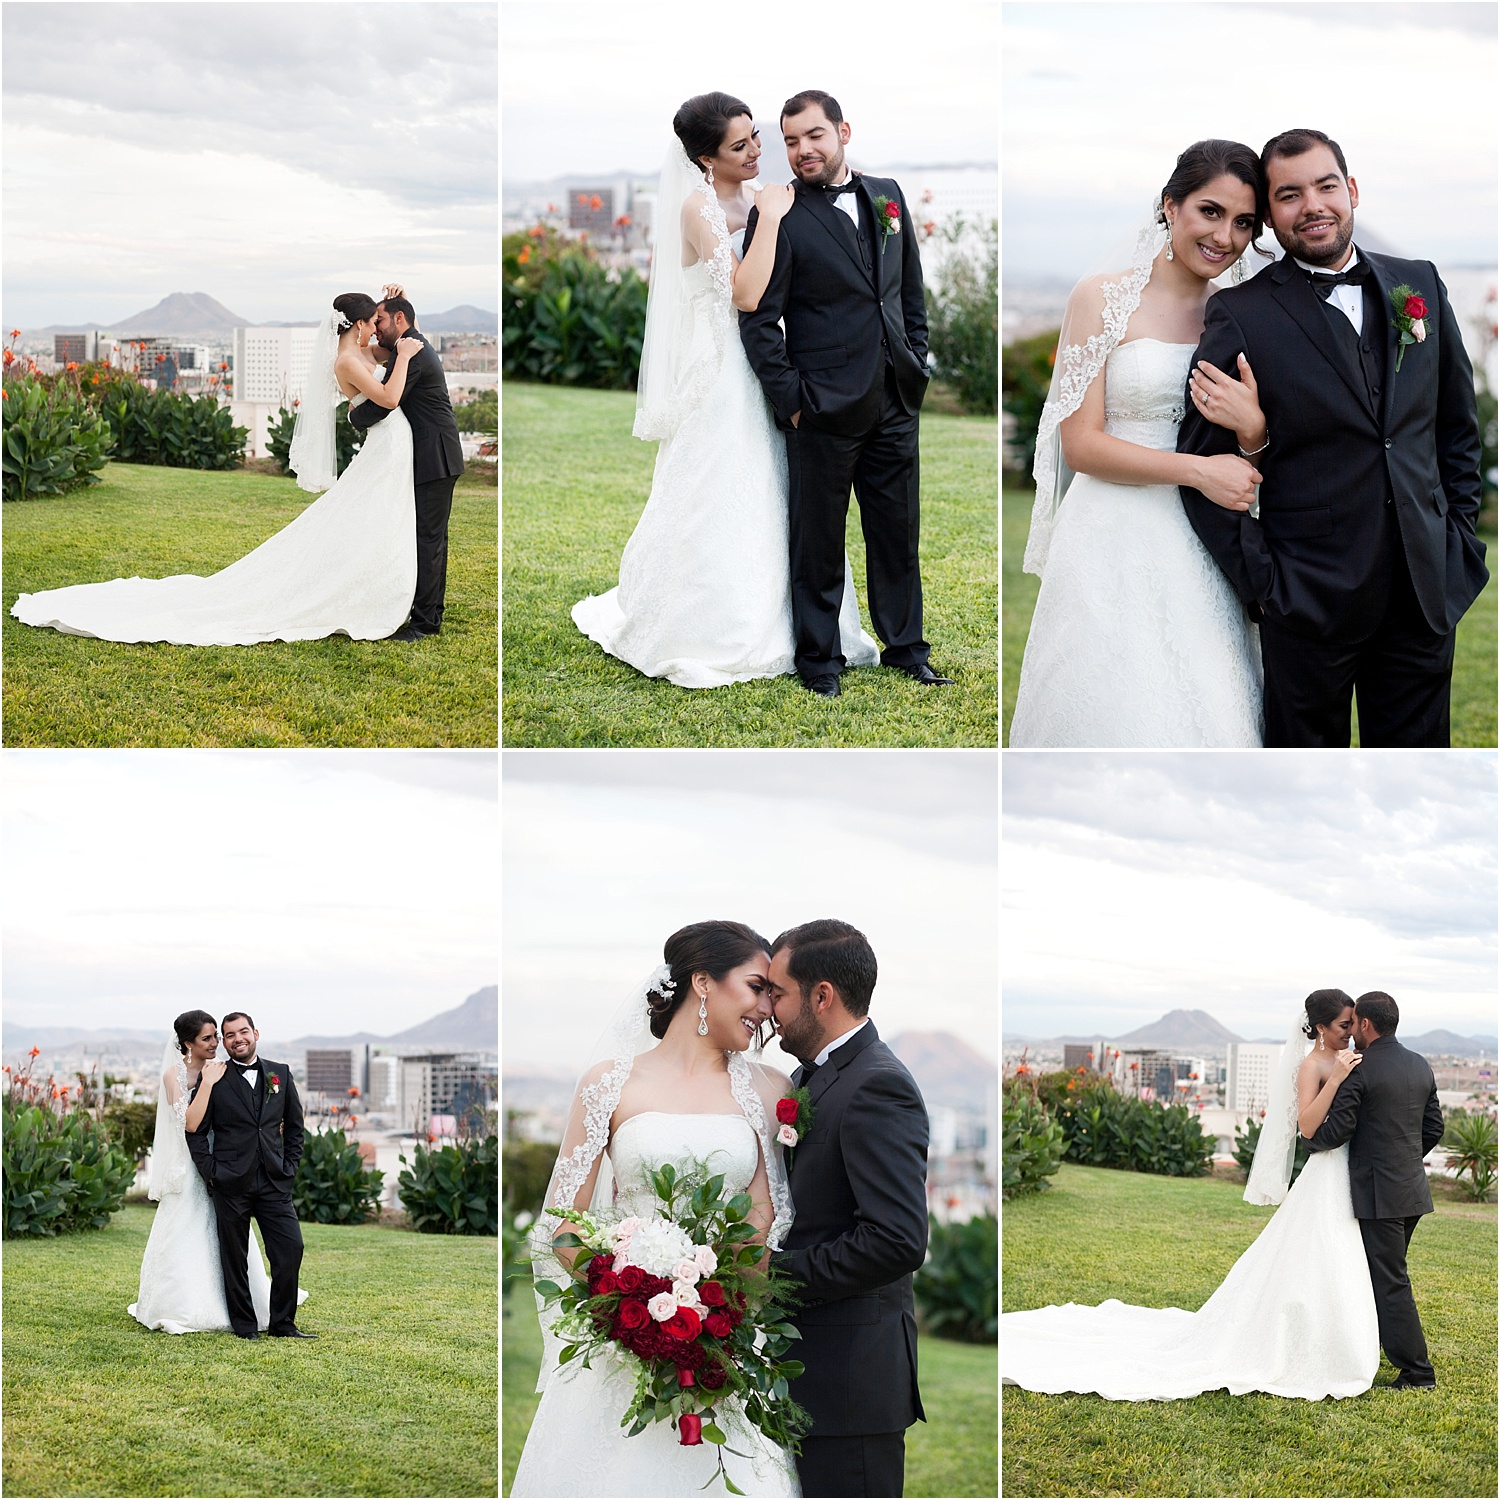 6 wedding couple poses - wedding day photography